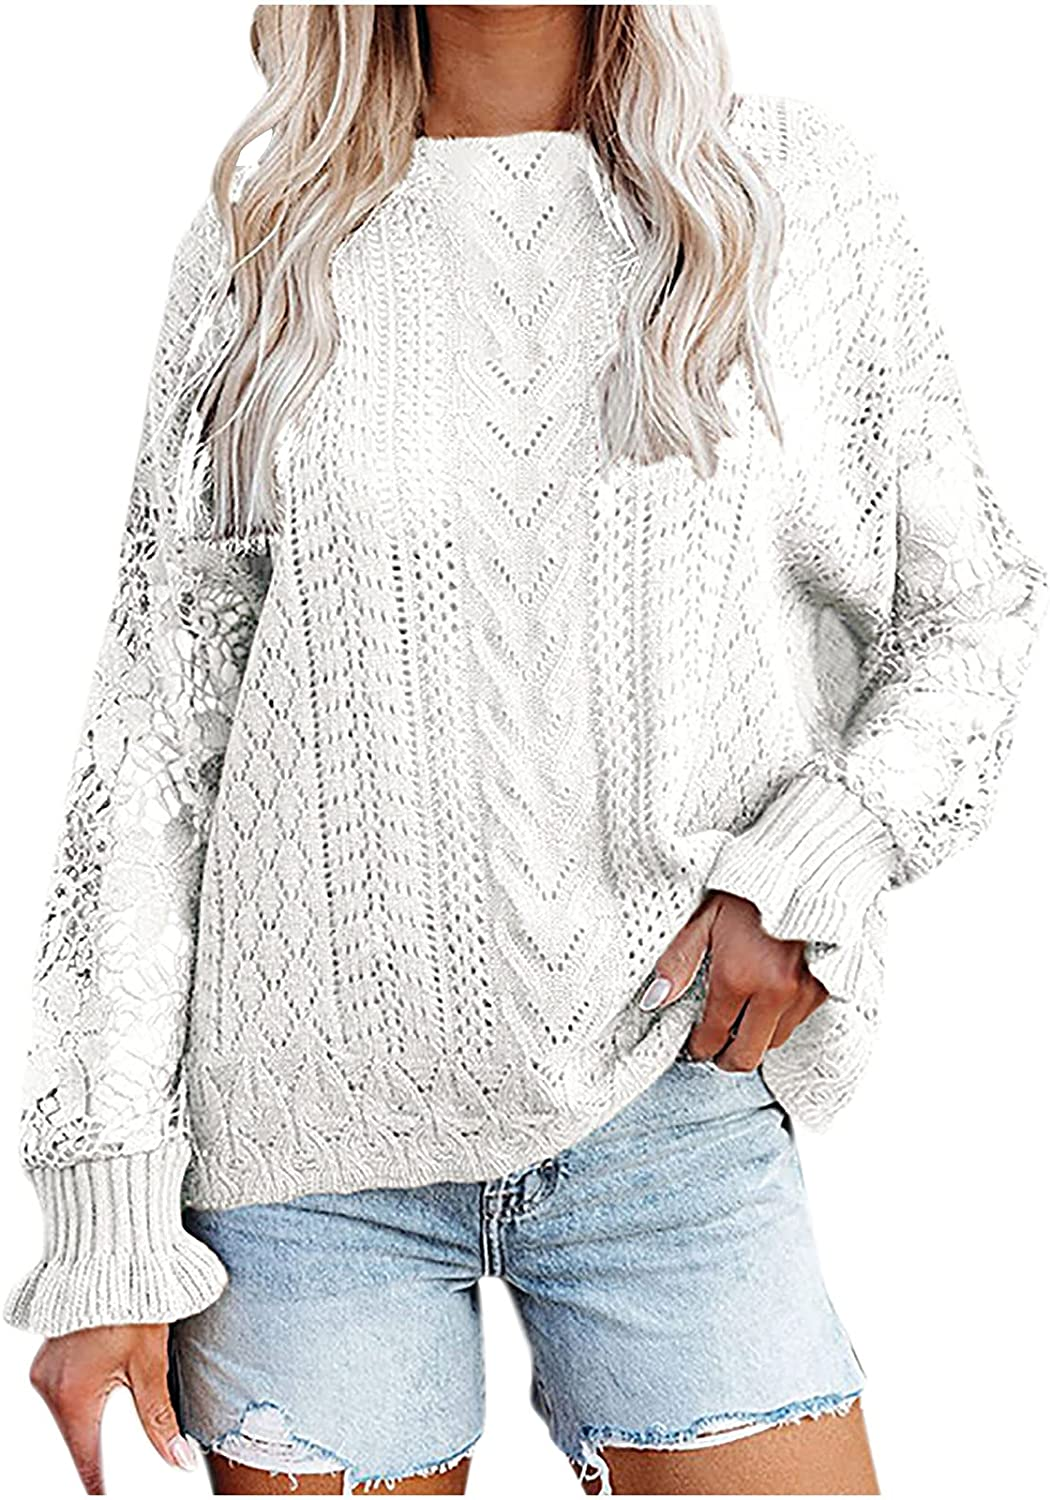 Sweater for Women Knitted Crochet Round Neck Batwing Solid Color Loose Long Sleeve Winter Base Pullover Top